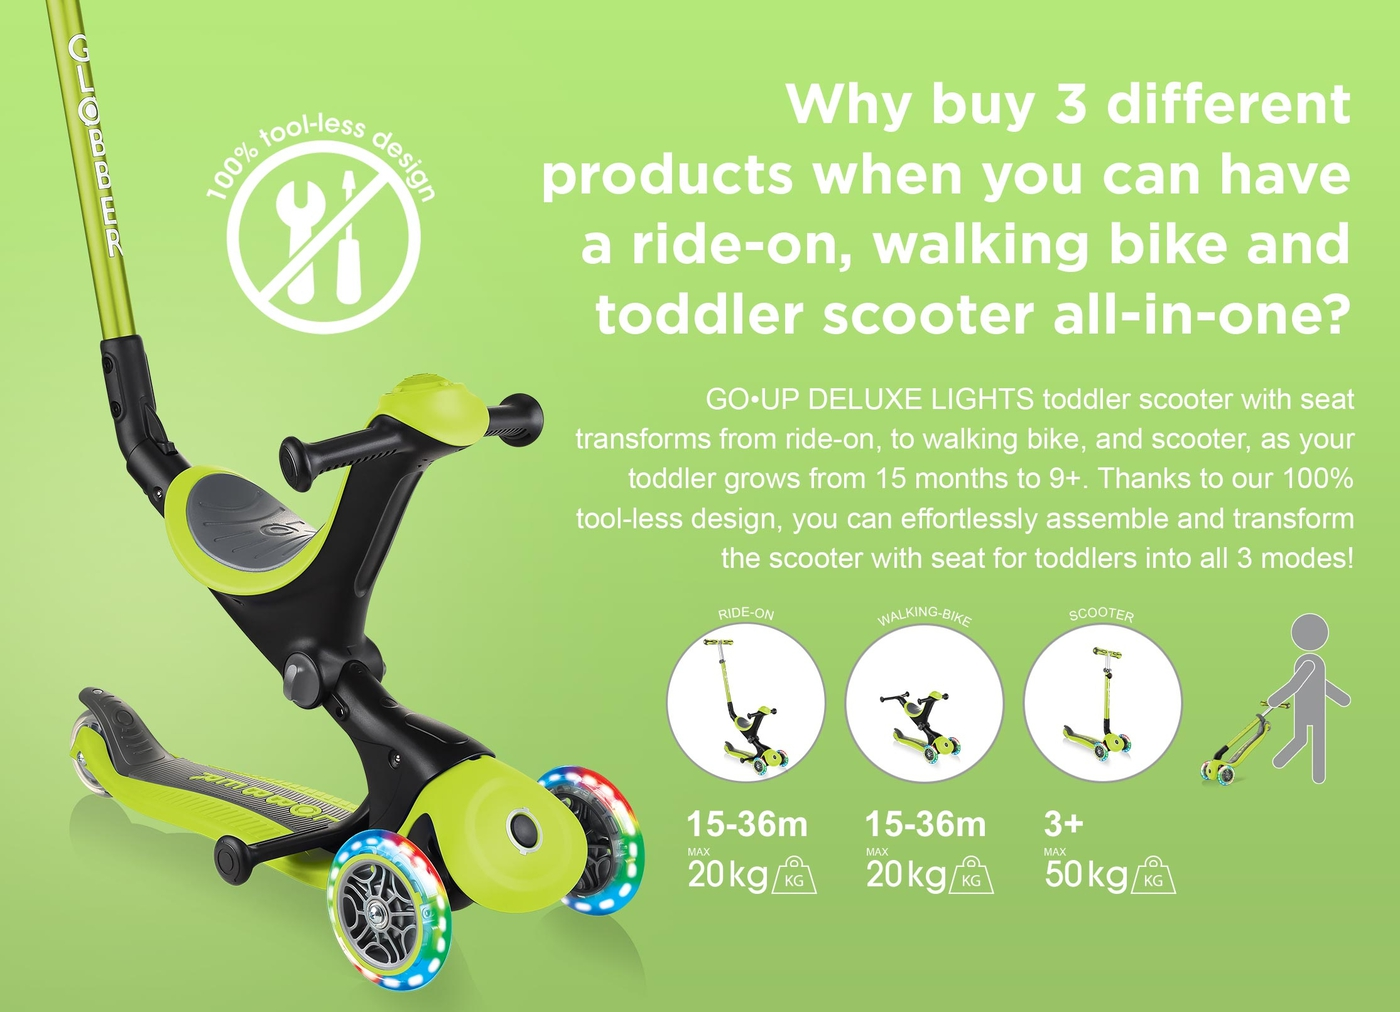 Why buy 3 different products when you can have a ride-on, walking bike and toddler scooter all-in-one? GO•UP DELUXE LIGHTS toddler scooter with seat transforms from ride-on, to walking bike, and scooter, as your toddler grows from 15 months to 9+. Thanks to our 100% tool-less design, you can effortlessly assemble and transform the scooter with seat for toddlers into all 3 modes!